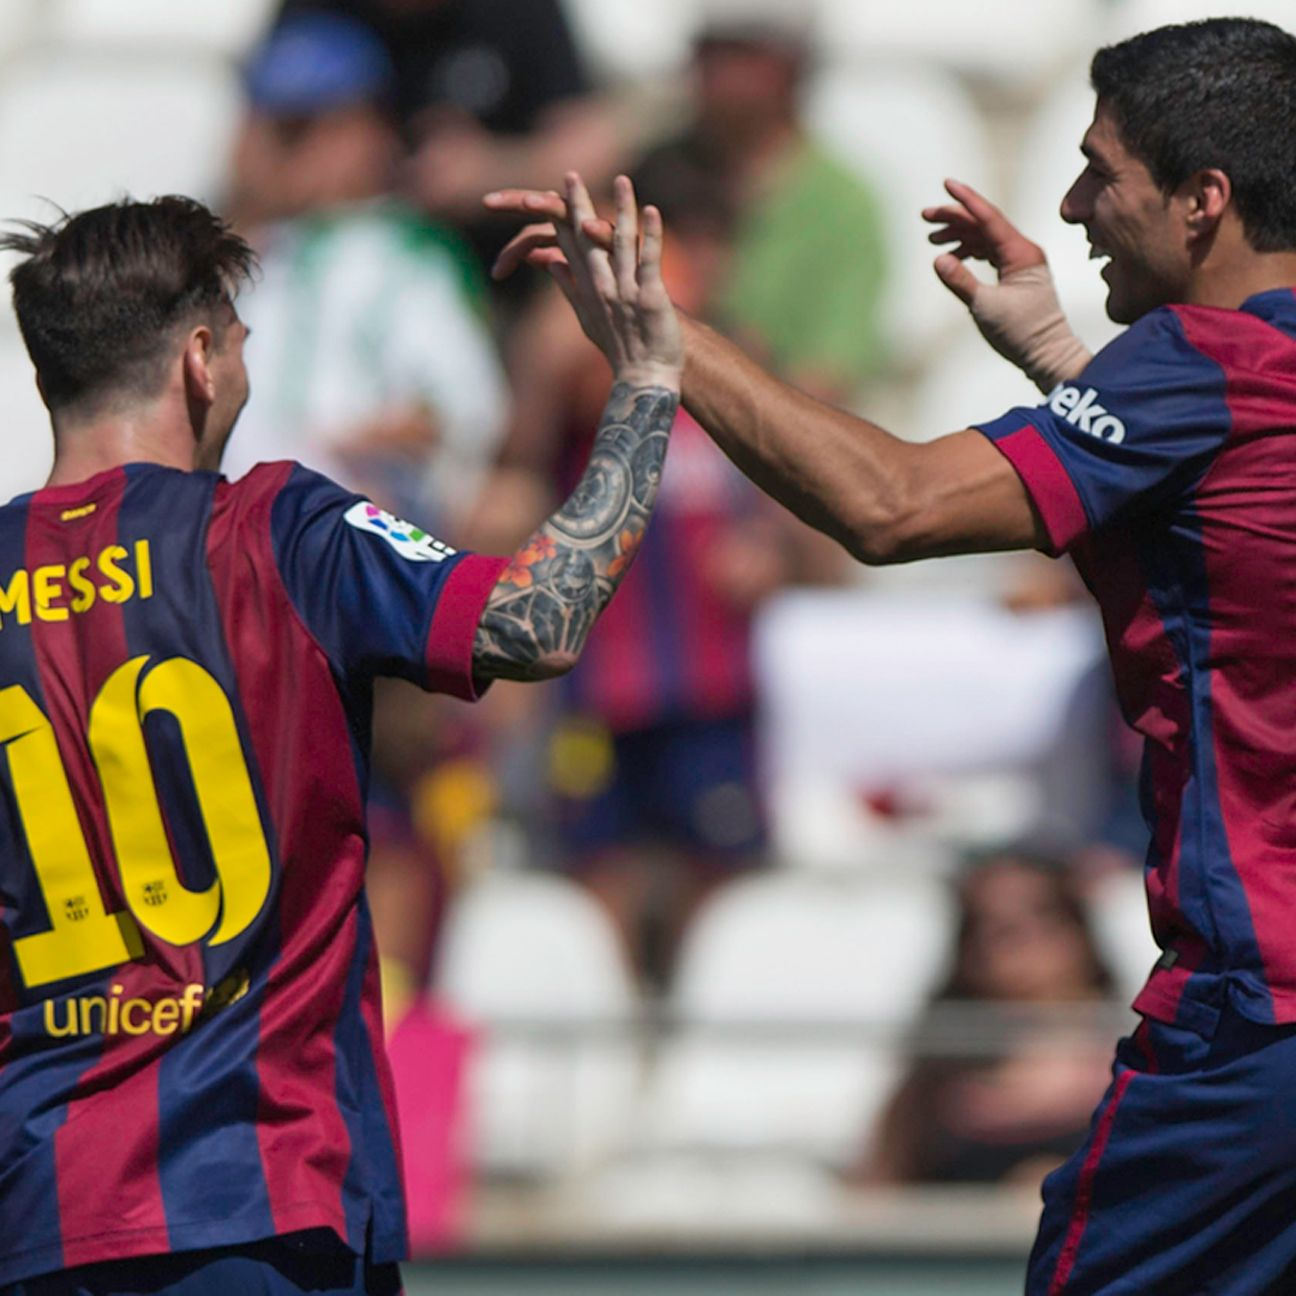 Lionel Messi and Luis Suarez combined to score five of Barcelona's eight goals versus Cordoba.